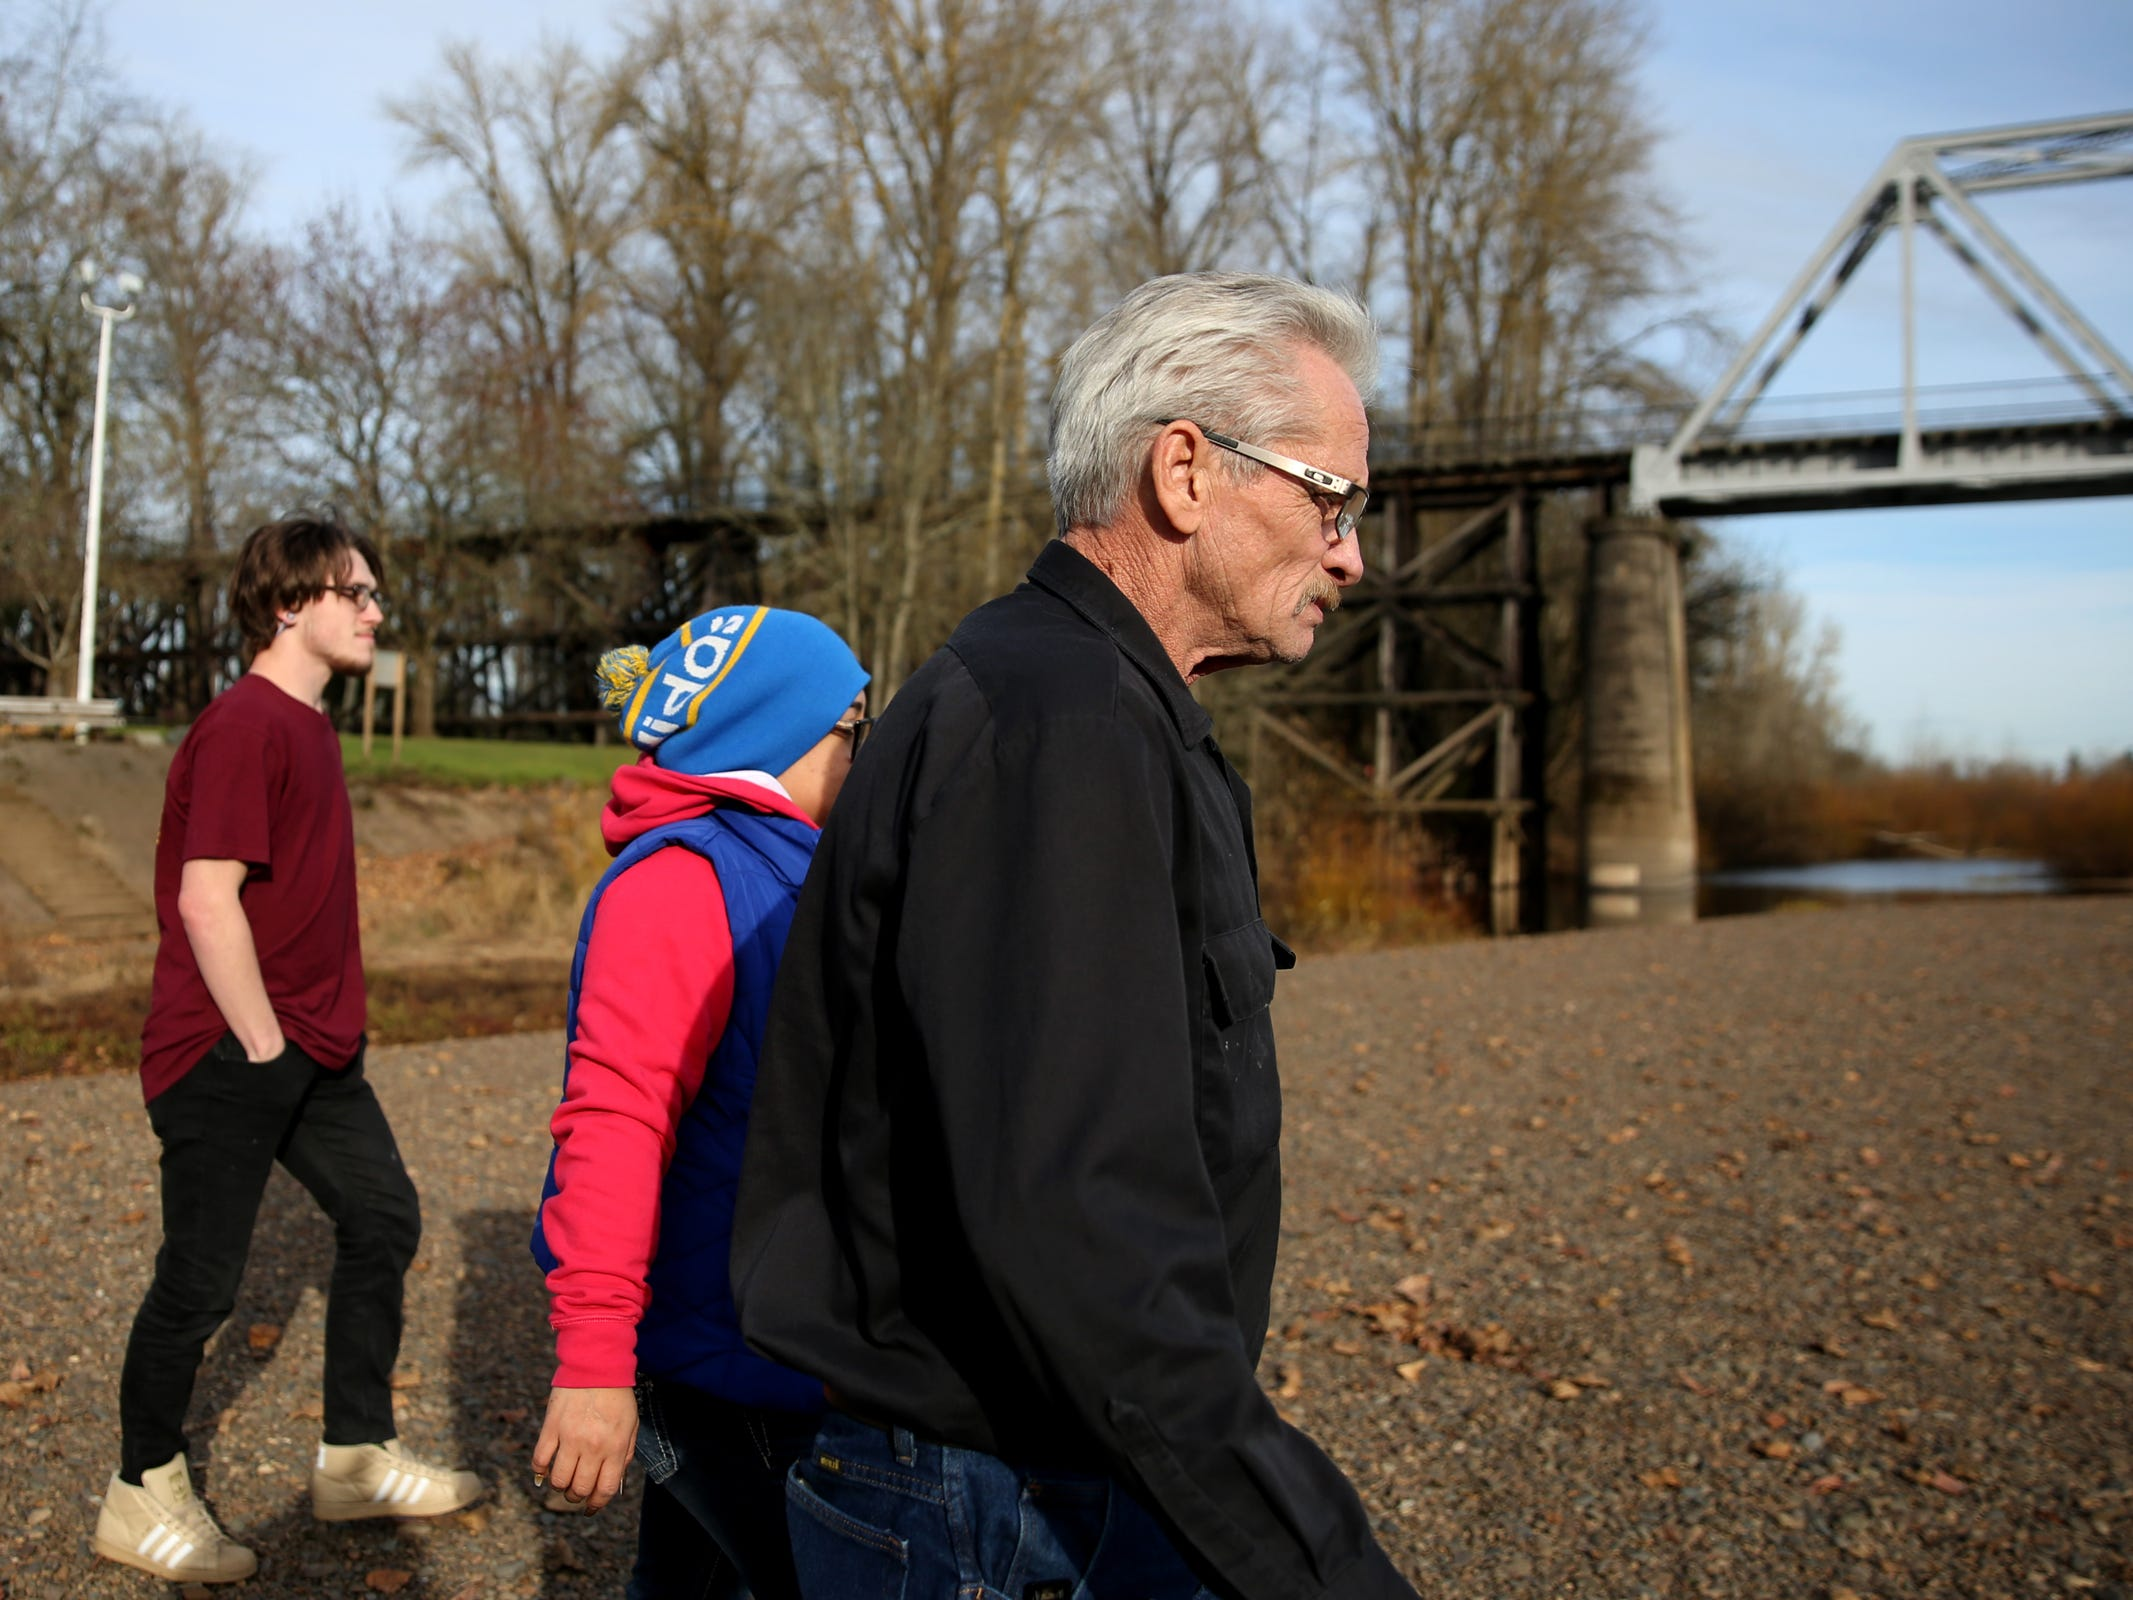 Richard Blocker, 61, of Vancouver, Wash., Carolina Johnson, a manager at a West Salem Subway, and Darrick Blocker, 20, of Vancouver, Wash., walk to spread the ashes of Richard Blockers' brother, Don Blocker, in the Willamette River at Wallace Marine Park in West Salem on Thursday, Dec. 13, 2018. Blocker lived in the park for about 40 years. He died the day after Thanksgiving, unable to get warm after falling into a pond near his tent.